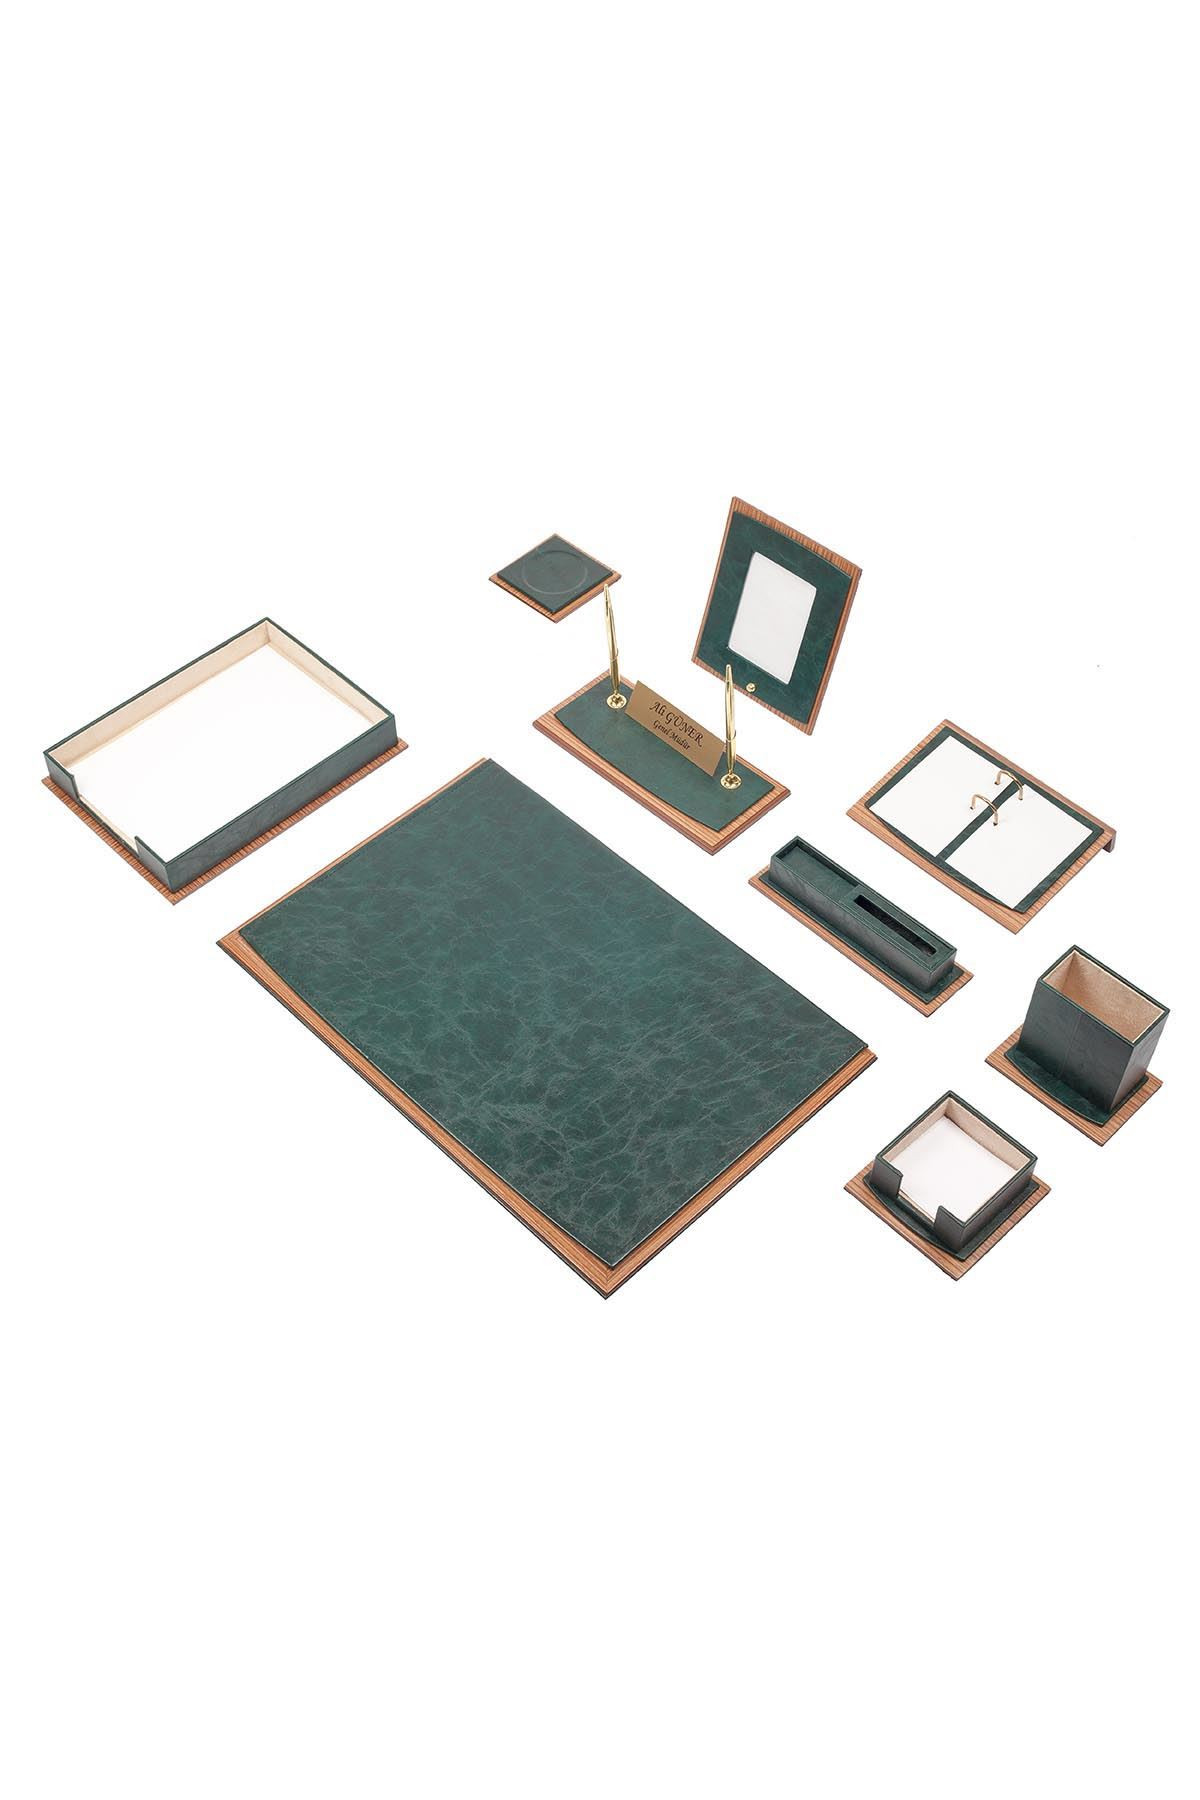 Star Lux Leather Desk Set Green 11 Accessories